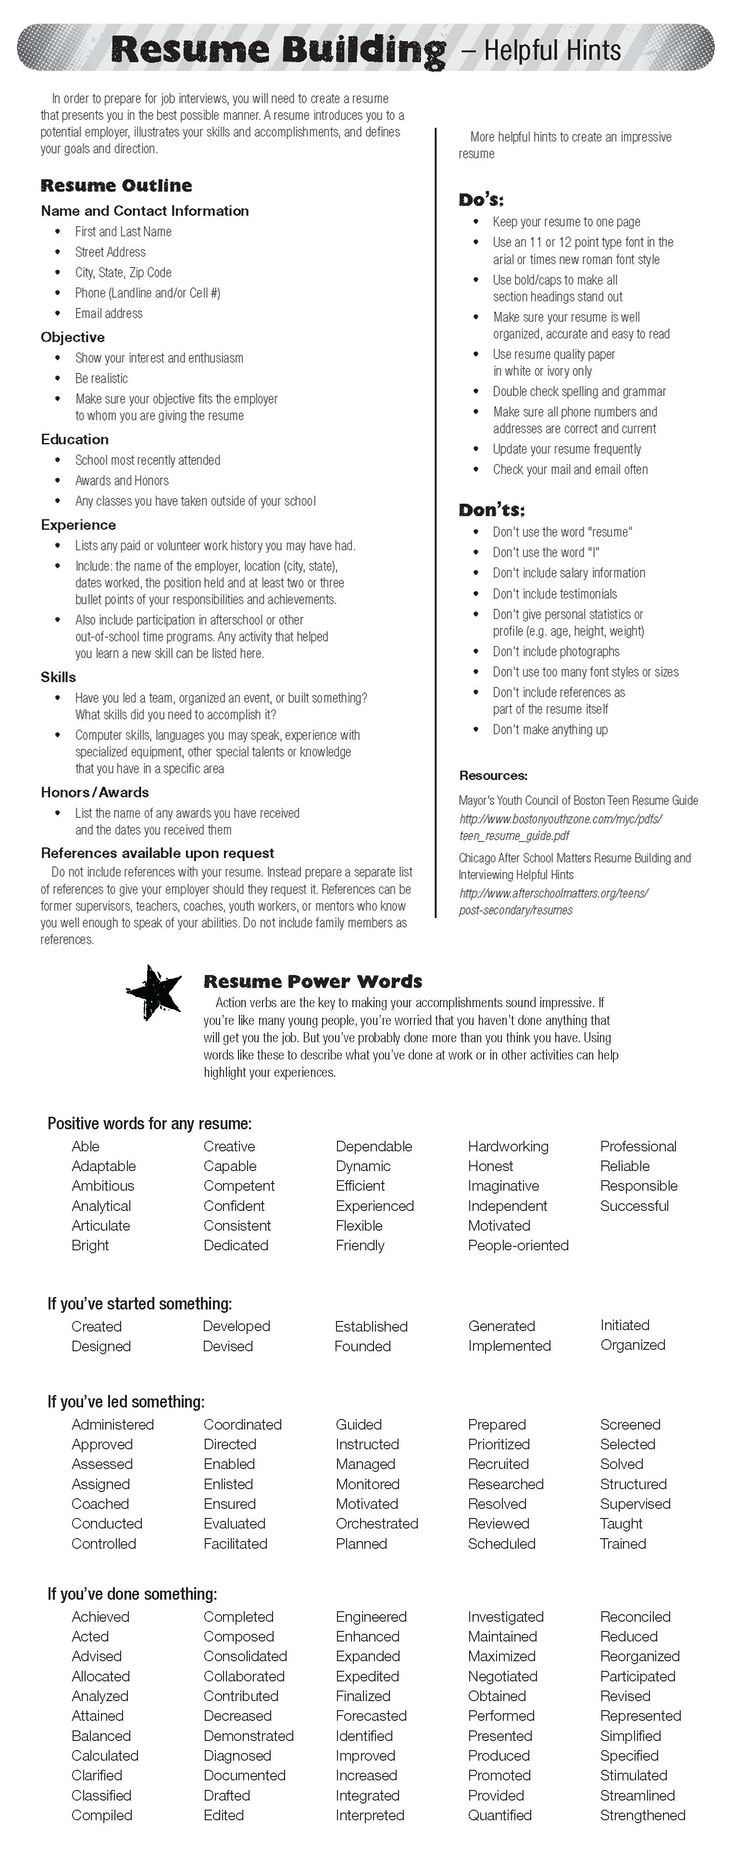 Opposenewapstandardsus  Winsome  Ideas About Resume On Pinterest  Cv Format Resume Cv And  With Marvelous  Ideas About Resume On Pinterest  Cv Format Resume Cv And Resume Templates With Nice General Objective For Resume Also Resume Builder For Free In Addition Stay At Home Mom Resume And Example Of A Good Resume As Well As Designer Resume Additionally Assistant Manager Resume From Pinterestcom With Opposenewapstandardsus  Marvelous  Ideas About Resume On Pinterest  Cv Format Resume Cv And  With Nice  Ideas About Resume On Pinterest  Cv Format Resume Cv And Resume Templates And Winsome General Objective For Resume Also Resume Builder For Free In Addition Stay At Home Mom Resume From Pinterestcom